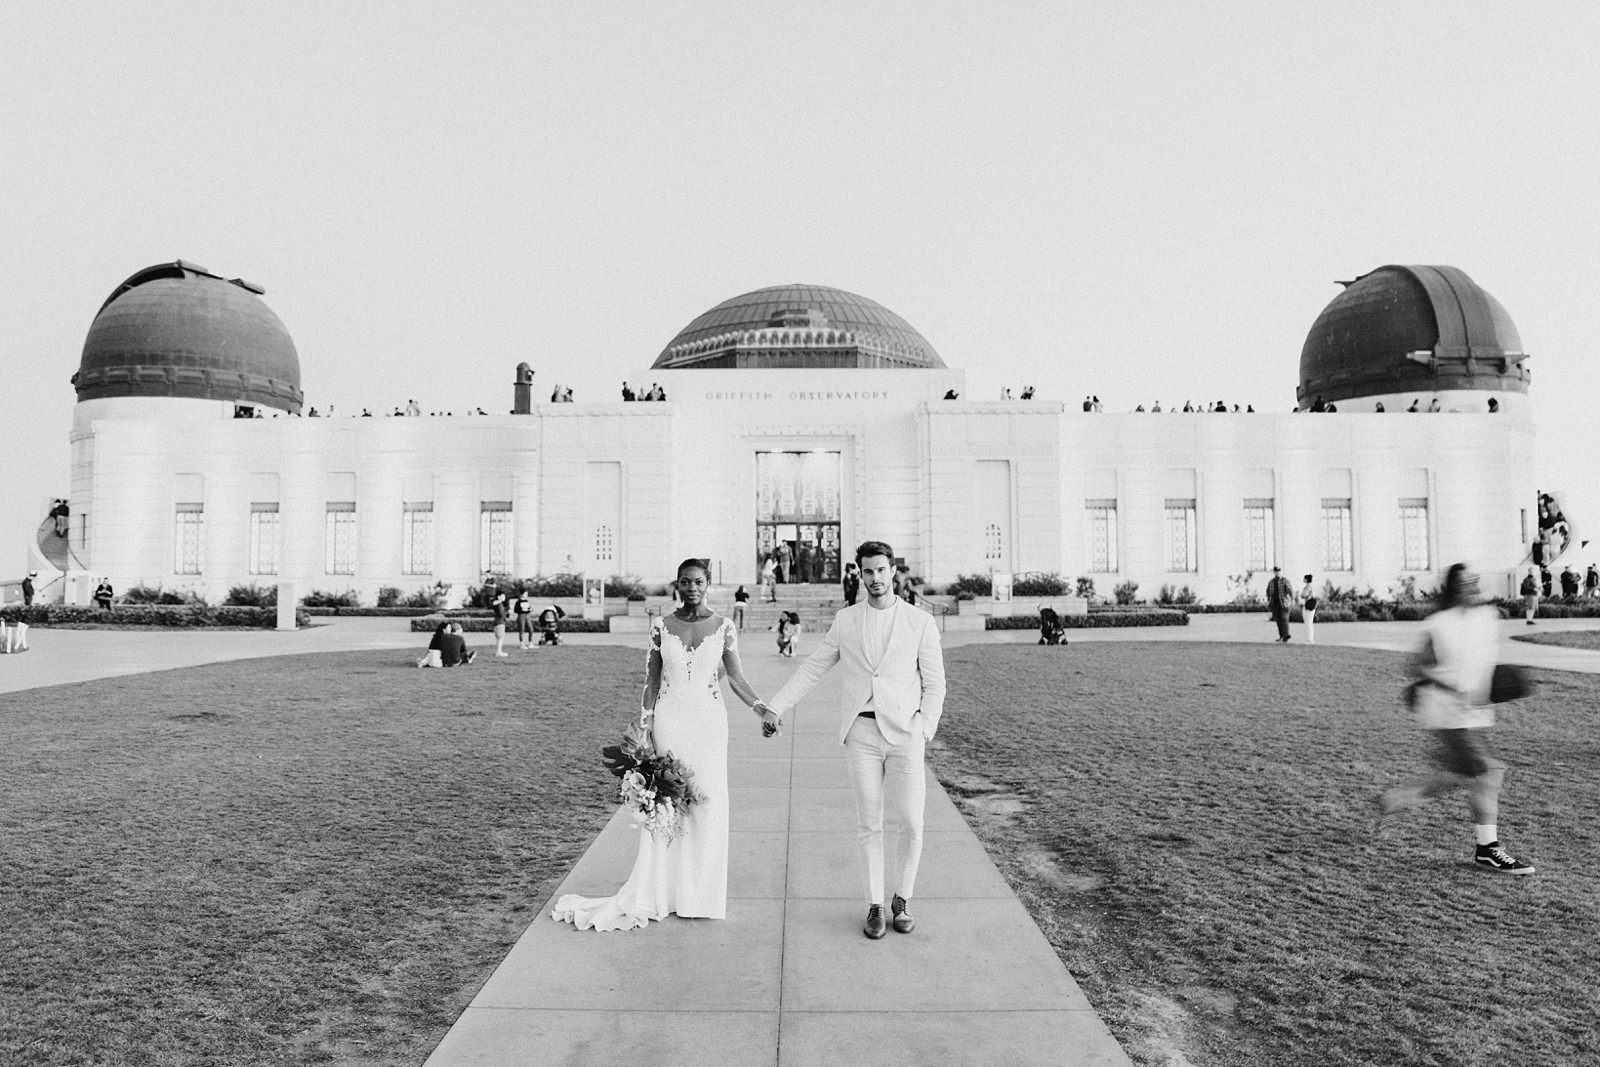 Modern timeless wedding photography at the Griffith Observatory in Los Angeles, California destination wedding photographer, black and white film photography